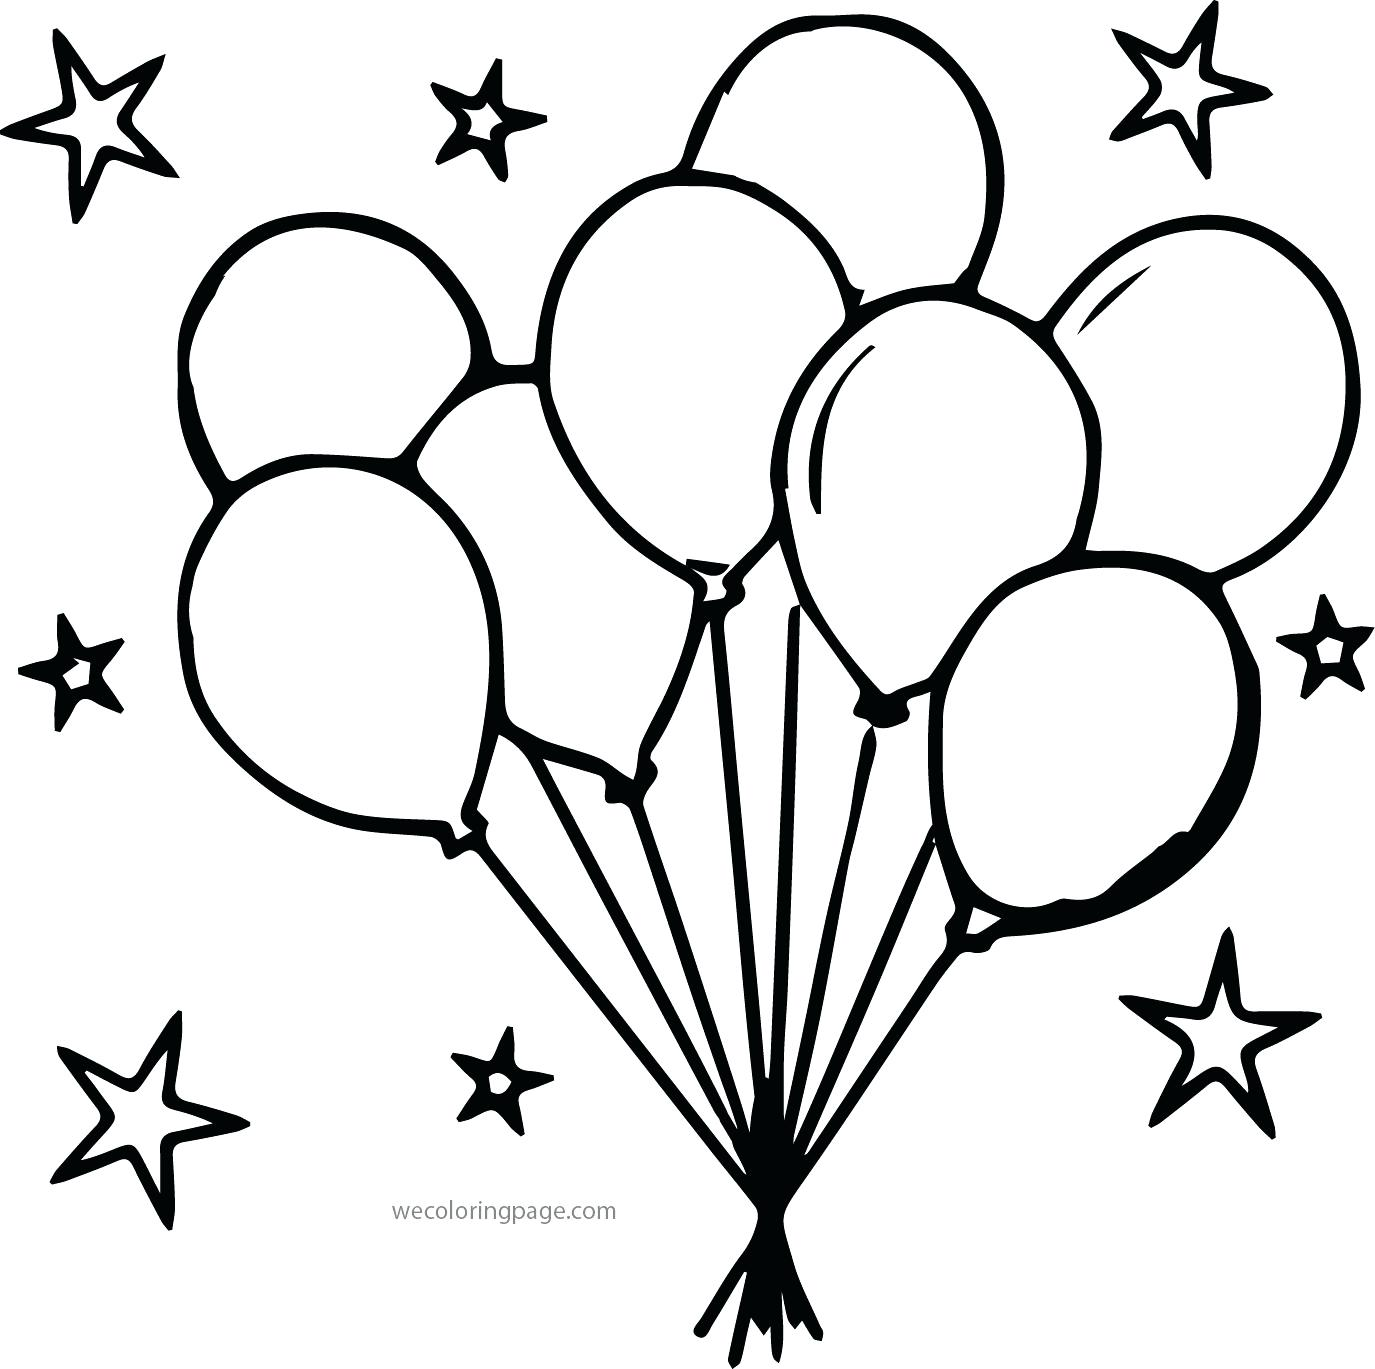 free birthday balloon coloring pages - photo#32